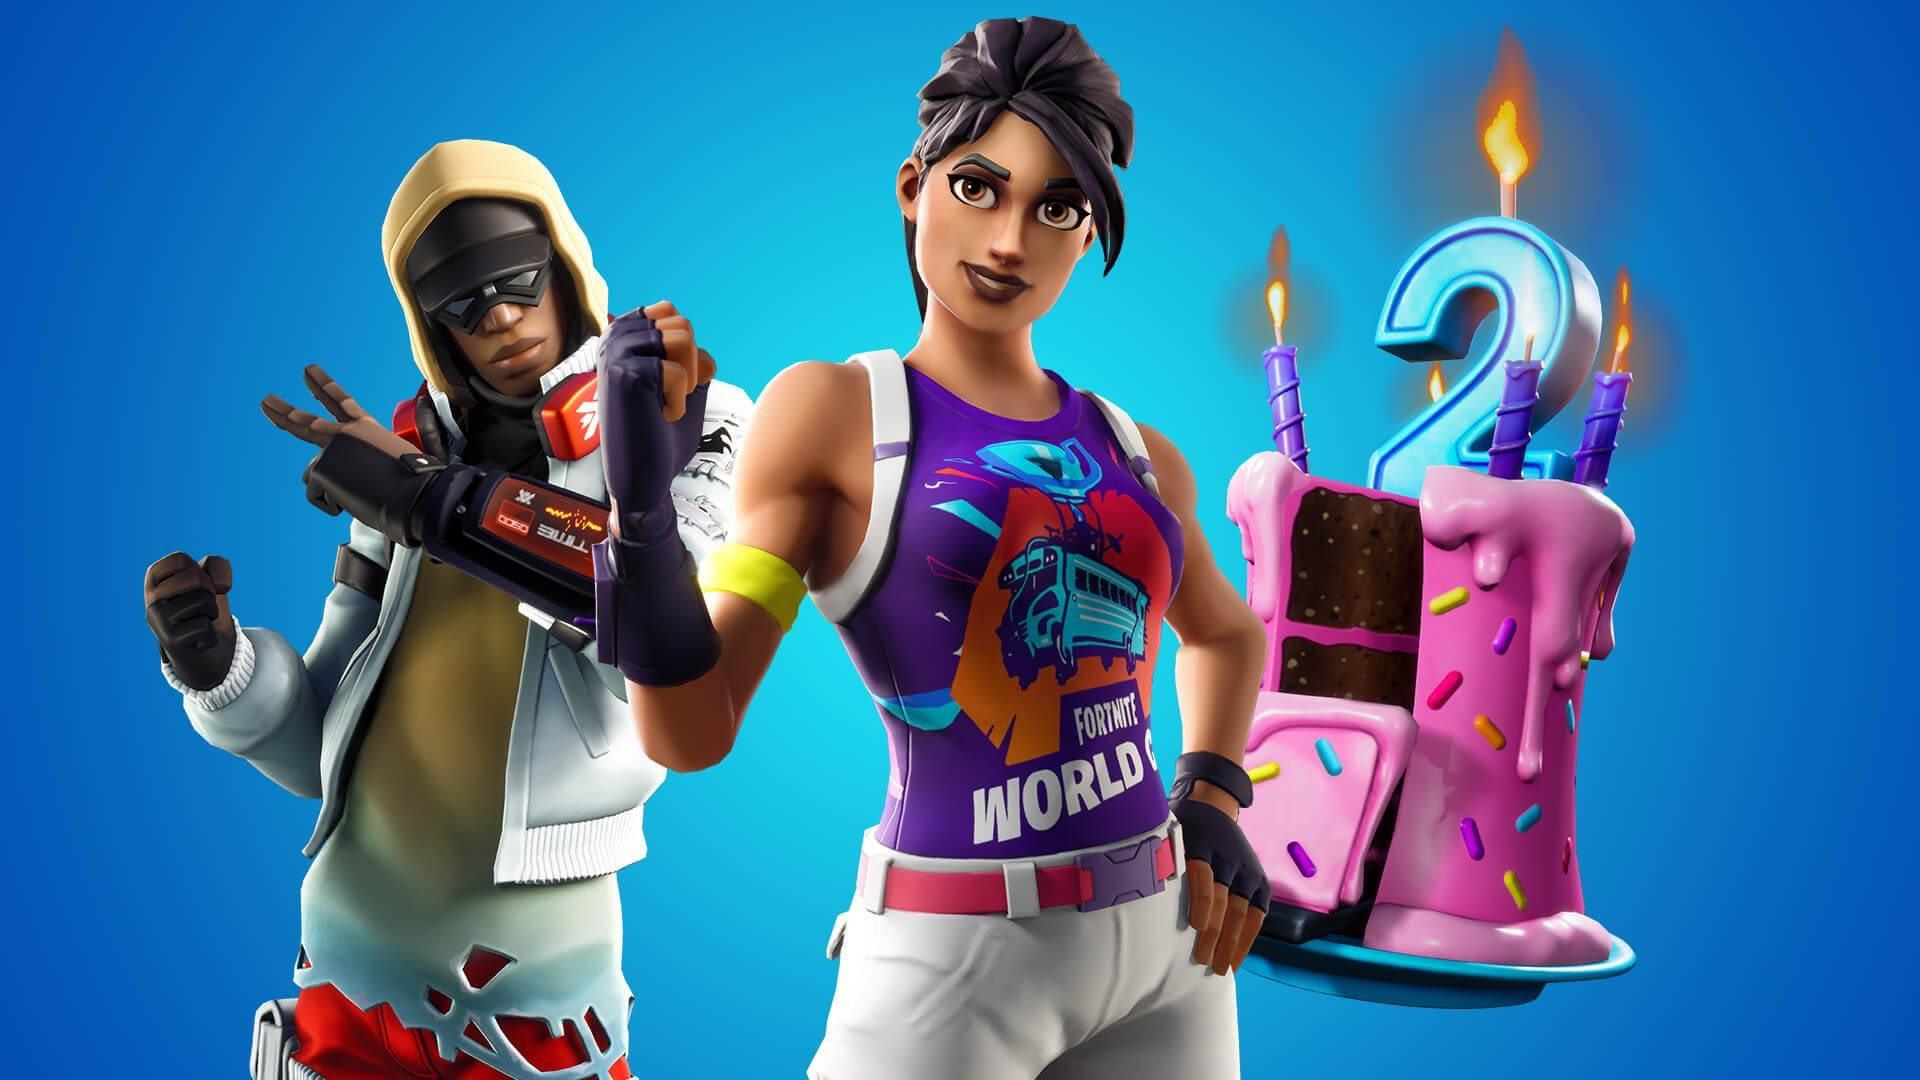 Fortnite World Cup World Warrior And Fishstick Fortnite Skins And Wrap Will Be In Today S Item Shop Fortnite Insider